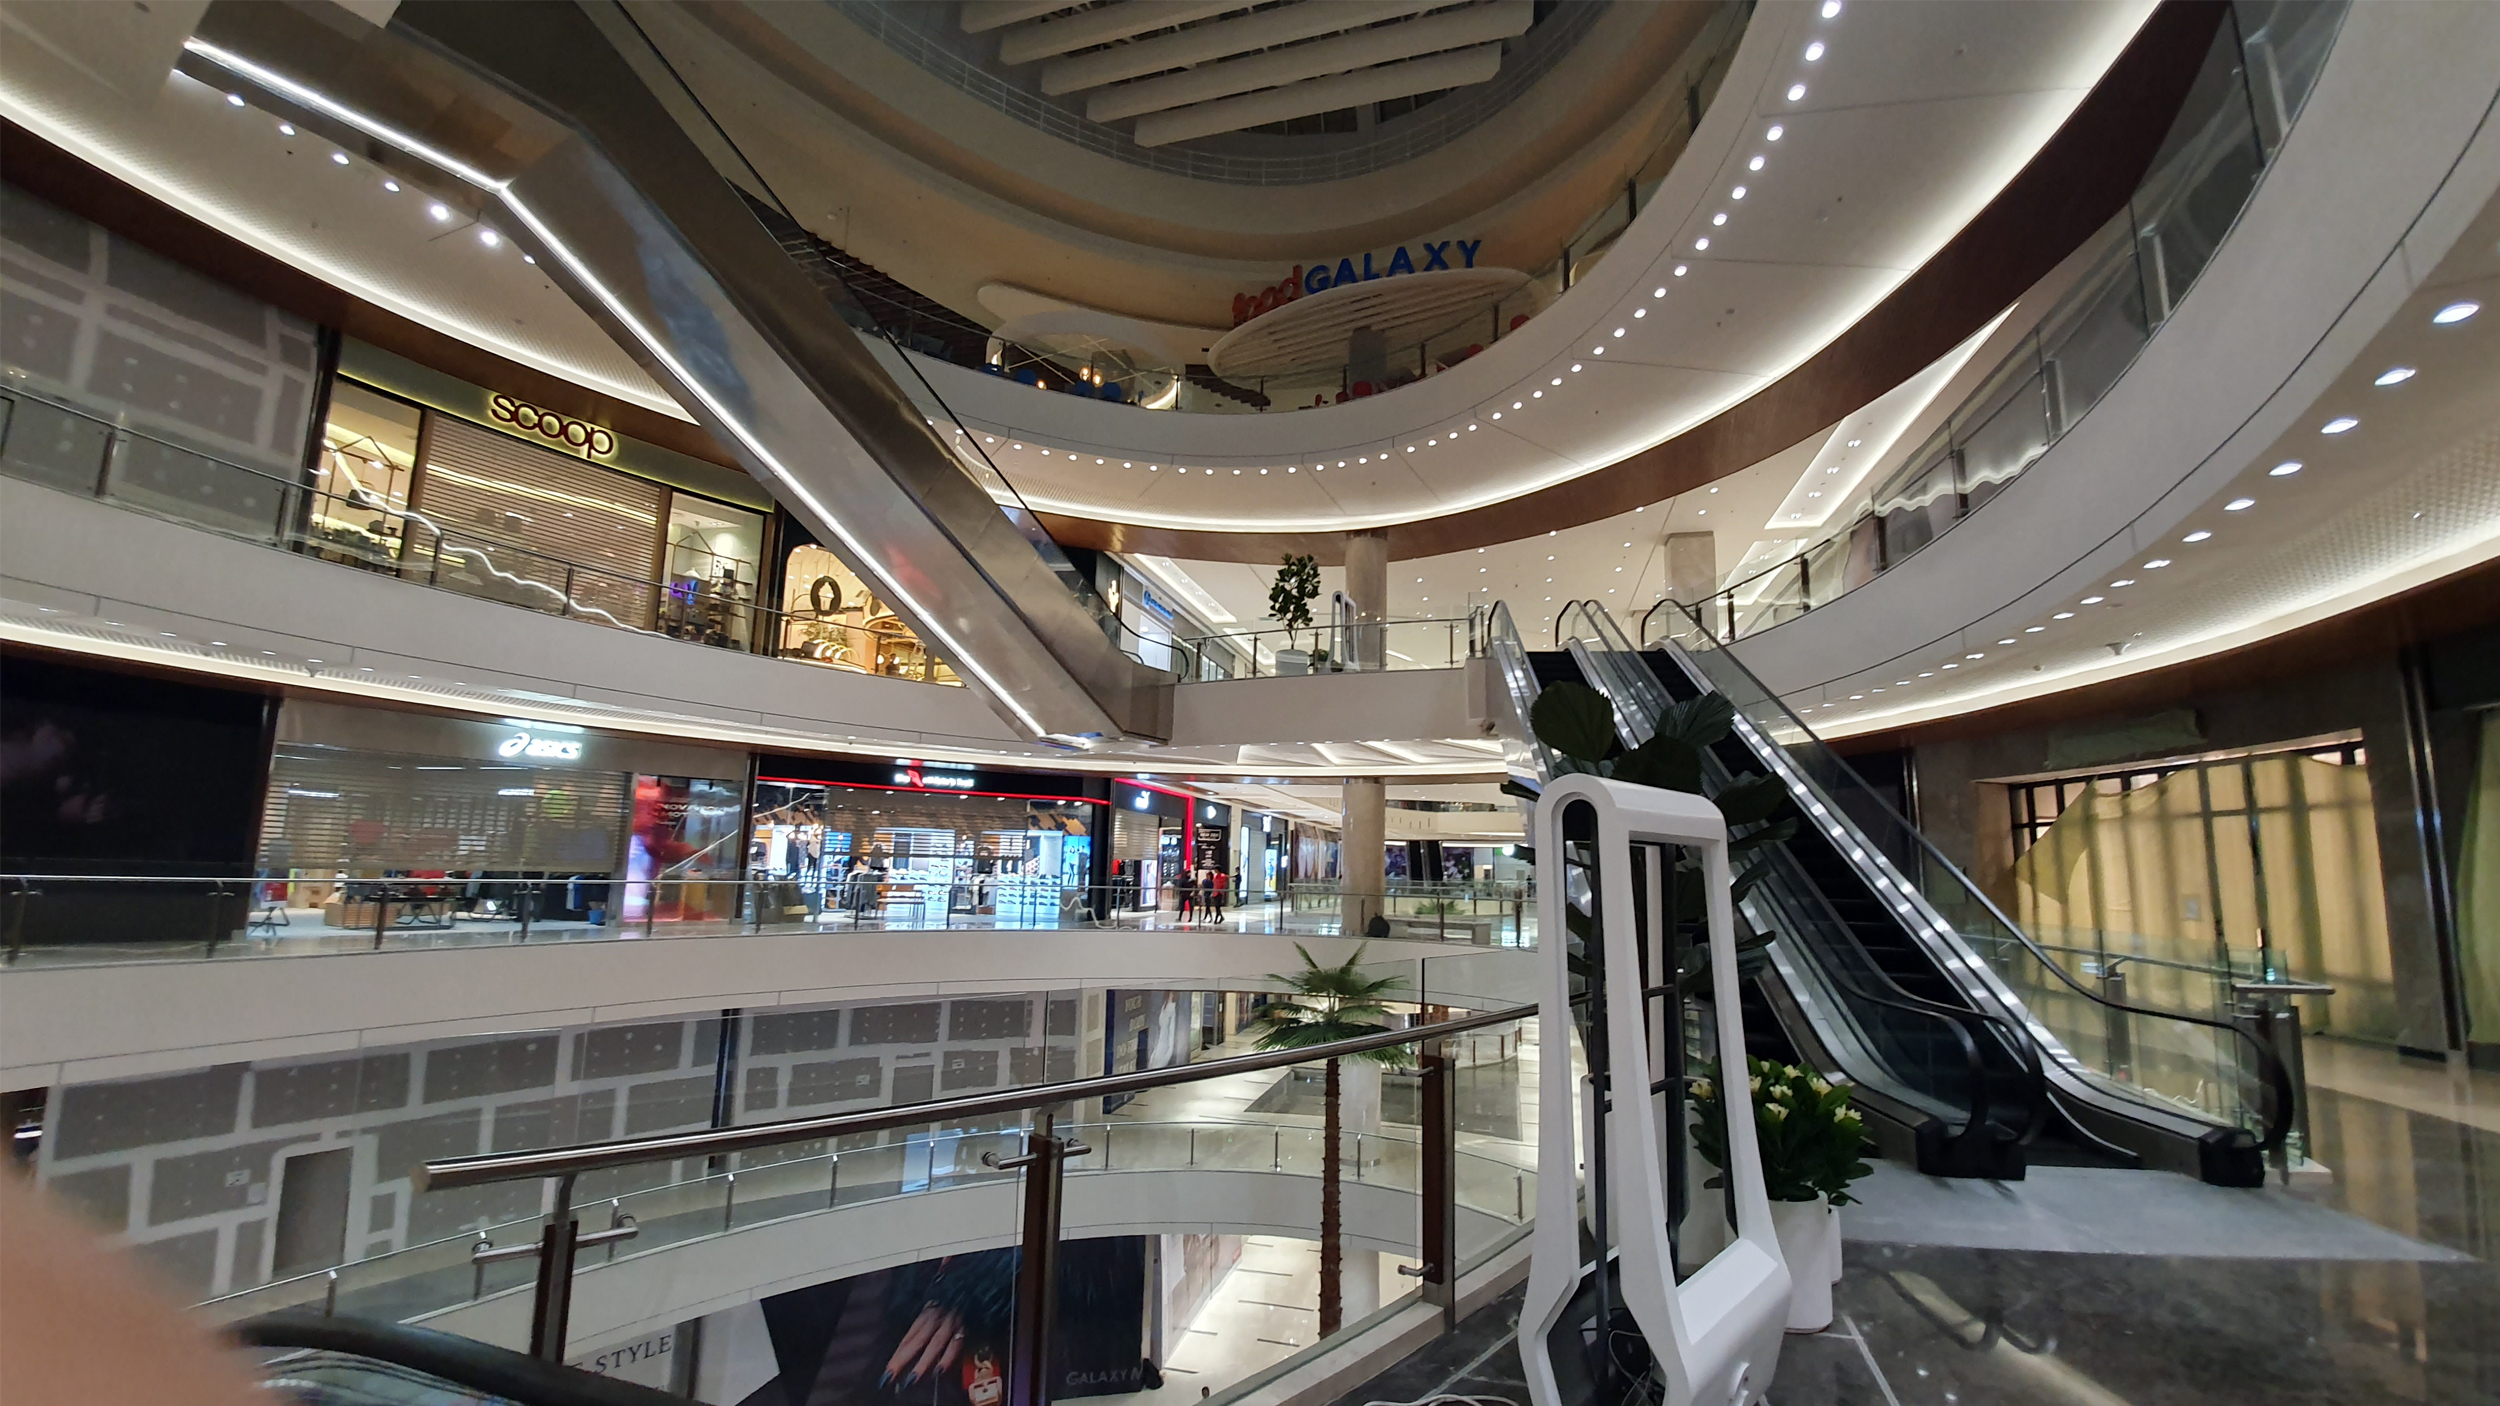 CADIZ-GALAXY-MALL-3_11.jpg